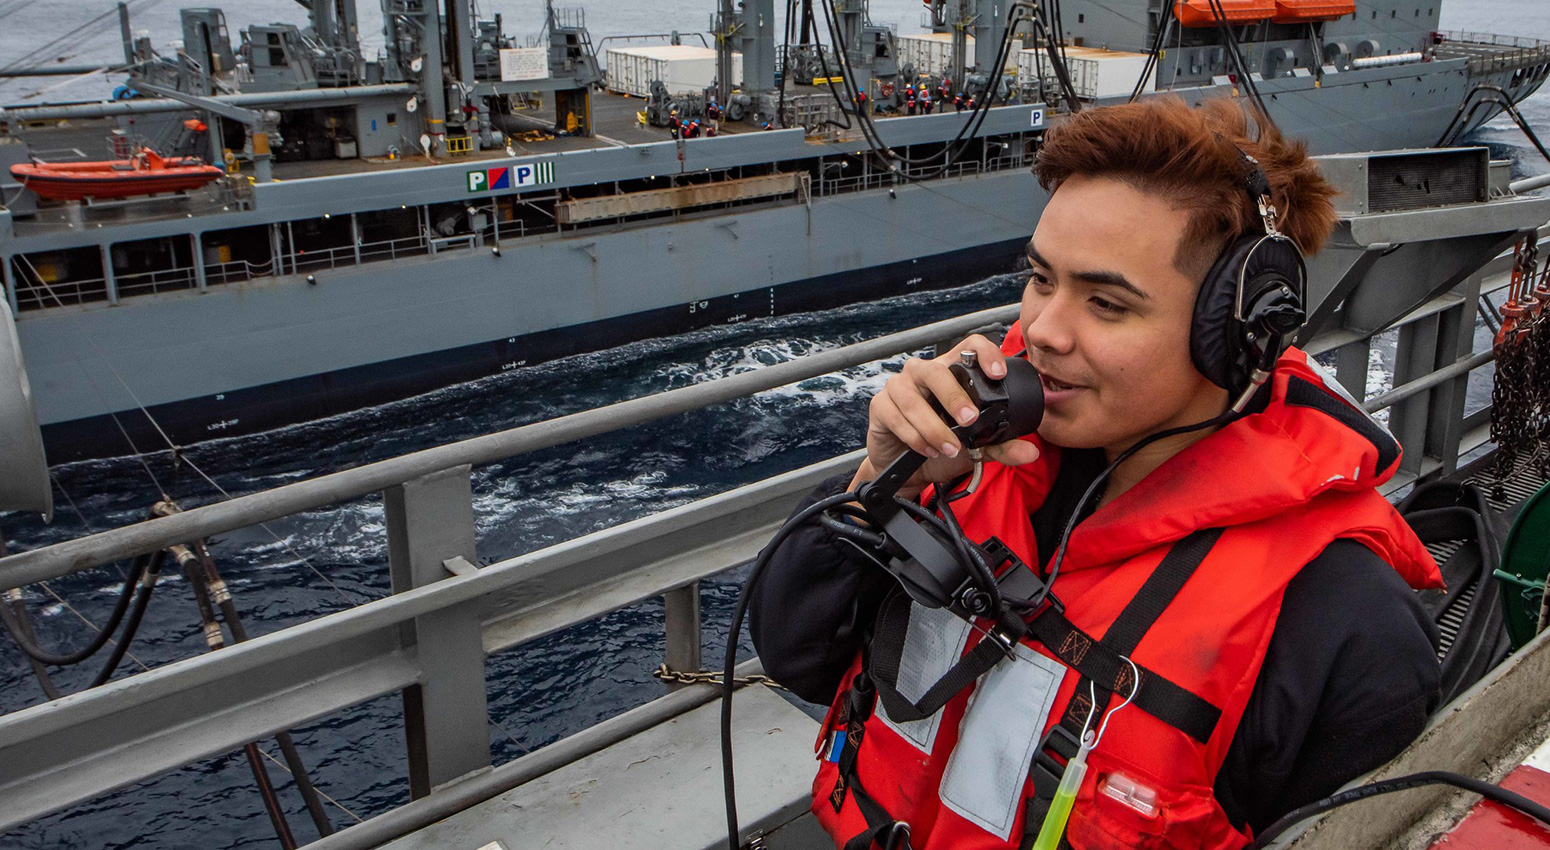 Seaman Shelbyan Diaz, from Harlingen, Texas, uses a sound-powered telephone to report the distance between the aircraft carrier USS Theodore Roosevelt (CVN 71) and the Military Sealift Command fleet replenishment oiler USNS Yukon (T-AO 202), Dec. 3, 2019.